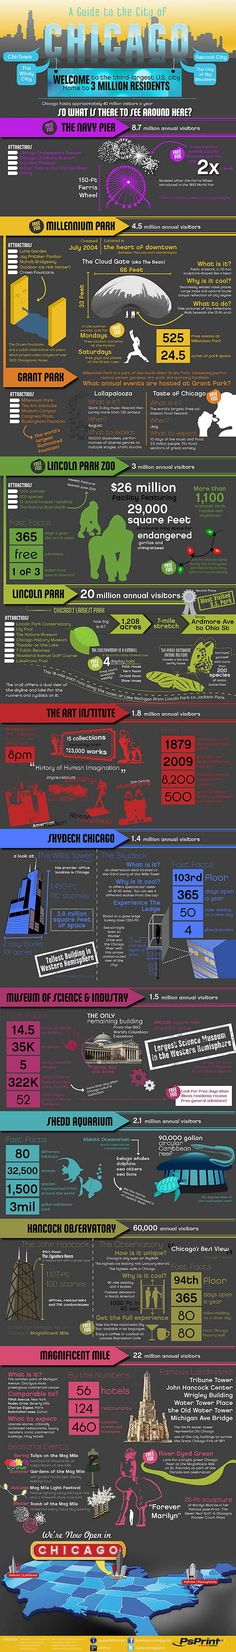 Guide for the city of Chicago: An infographic by the team at PsPrint for Chicago Chicago Travel, Chicago Trip, Bike Rental Chicago, Chicago To Do, Chicago Parking, Union Station Chicago, Chicago Style, Chicago Museums, Navy Pier Chicago